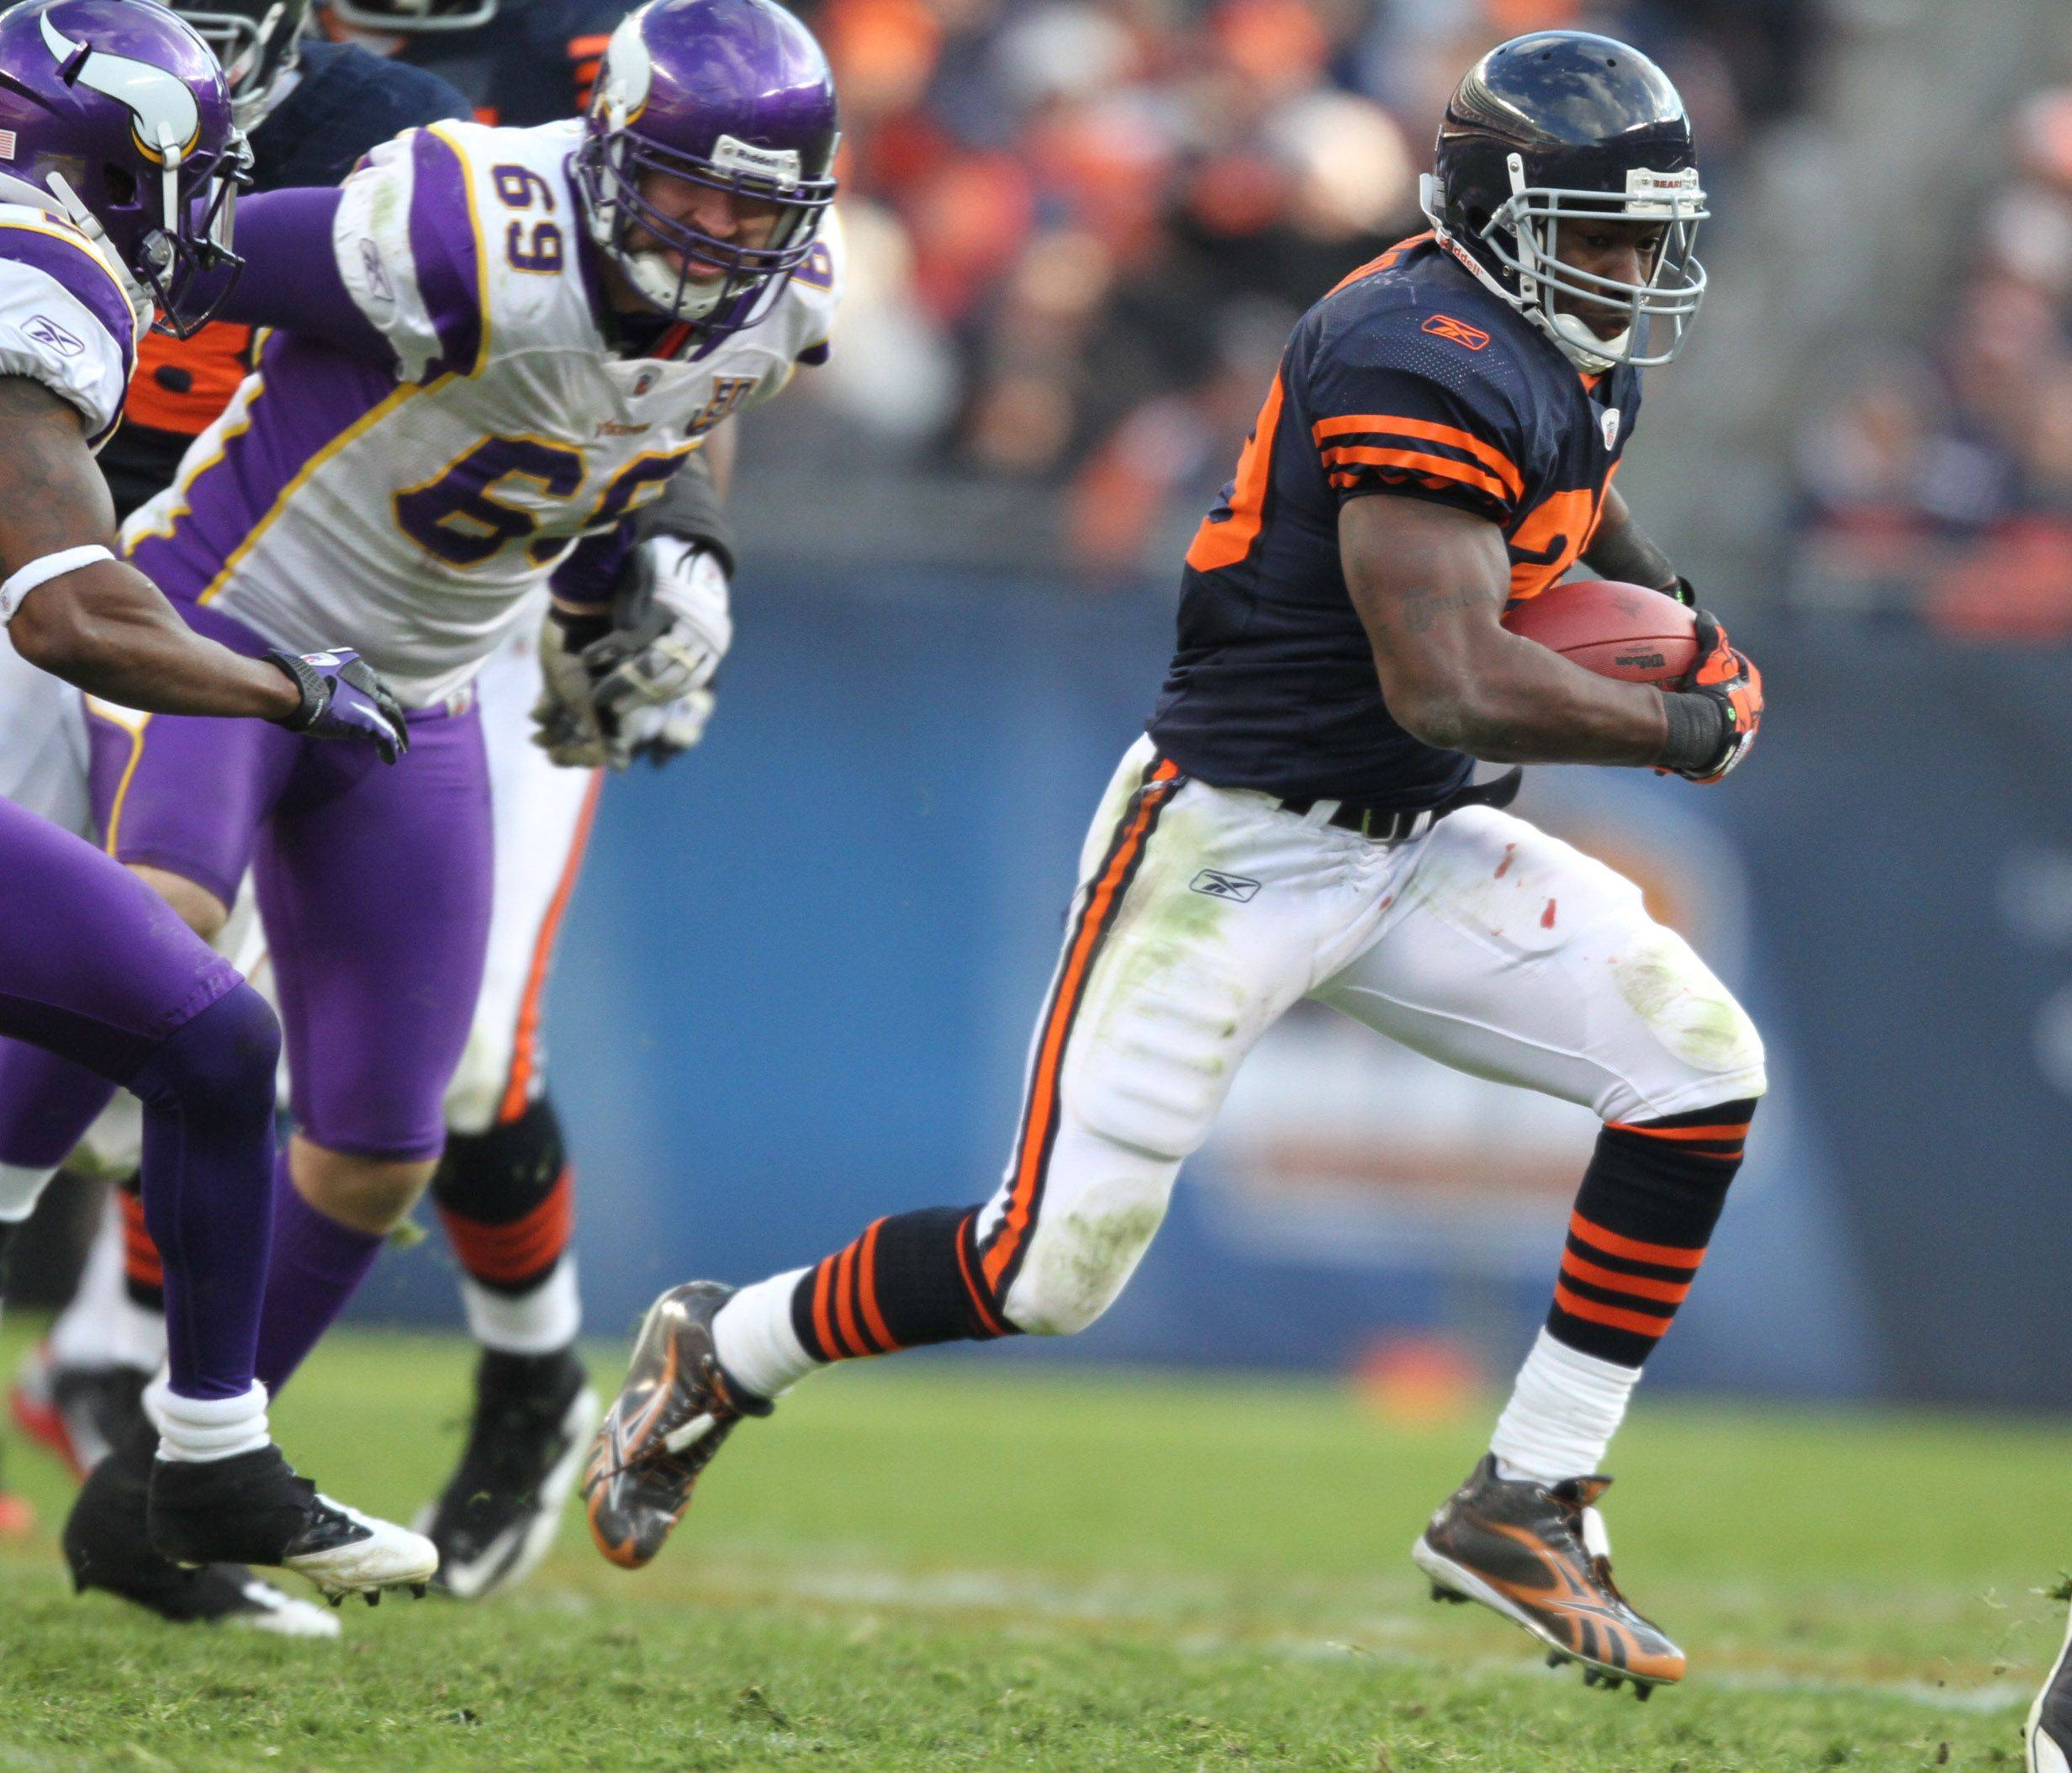 Chicago Bears' Chester Taylor runs the ball against Minnesota Vikings in the second half.